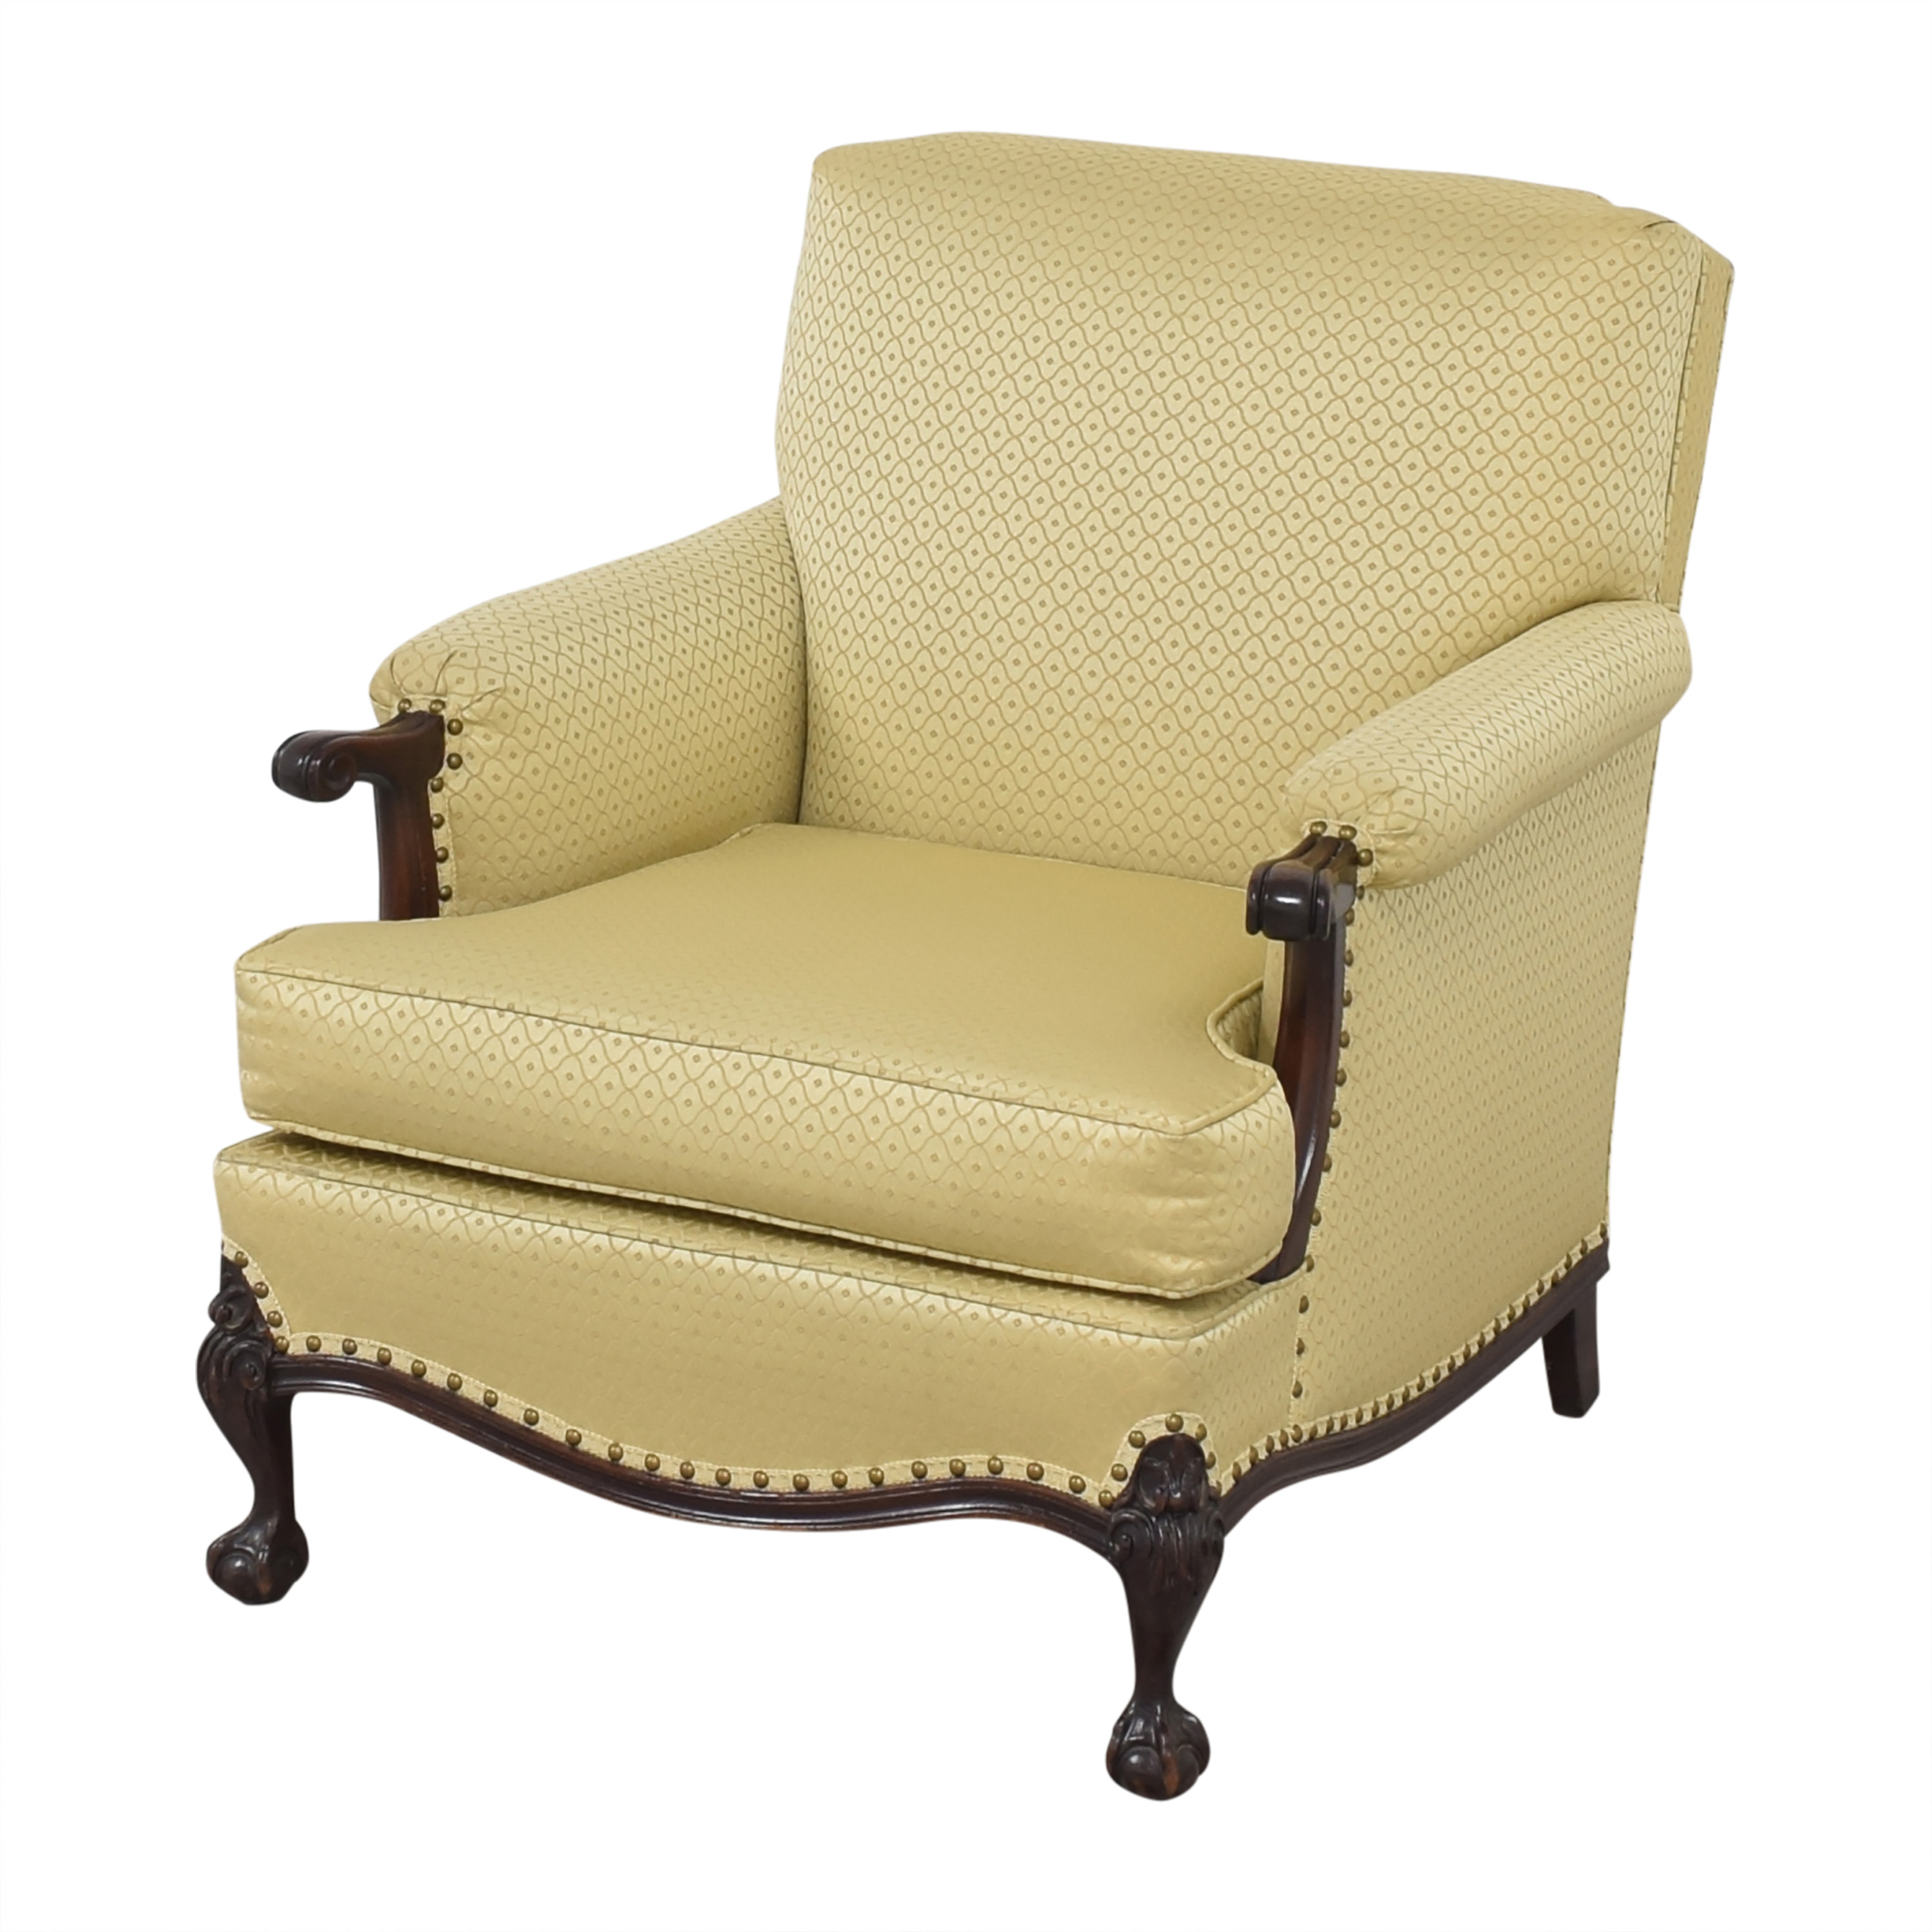 Upholstered Accent Chair  used